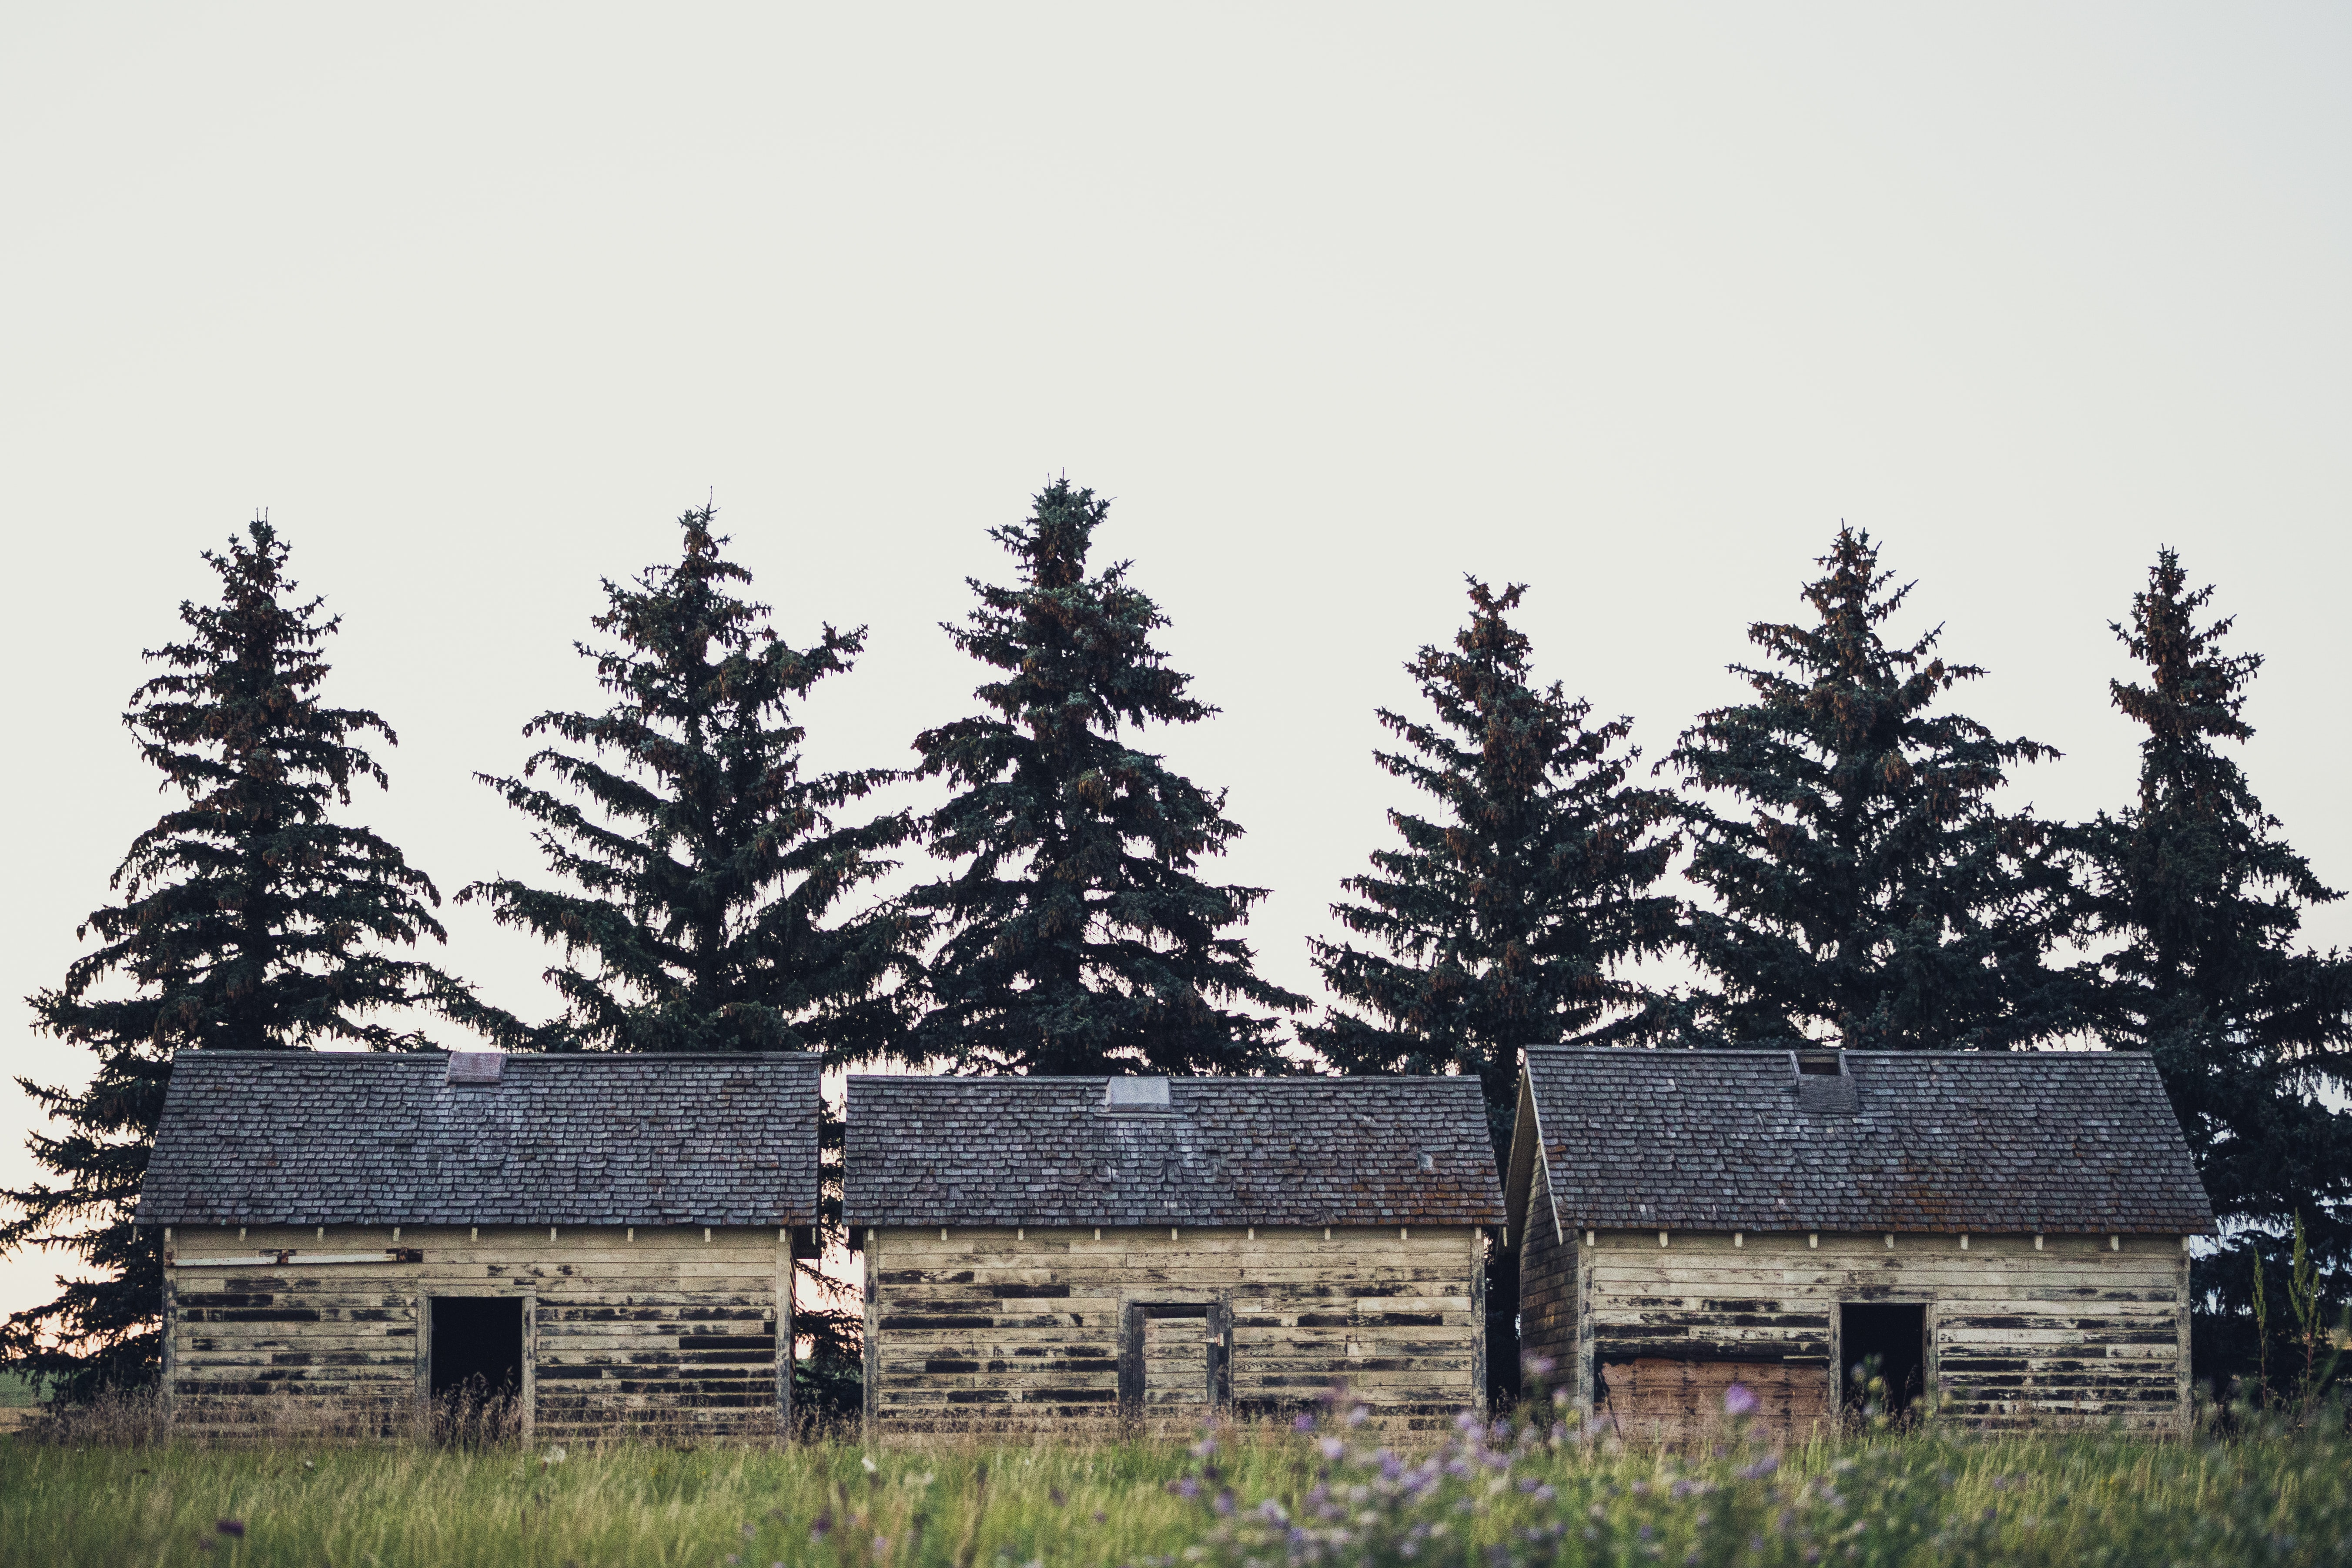 Three rustic sheds in a field with six huge pine trees in Three Hills